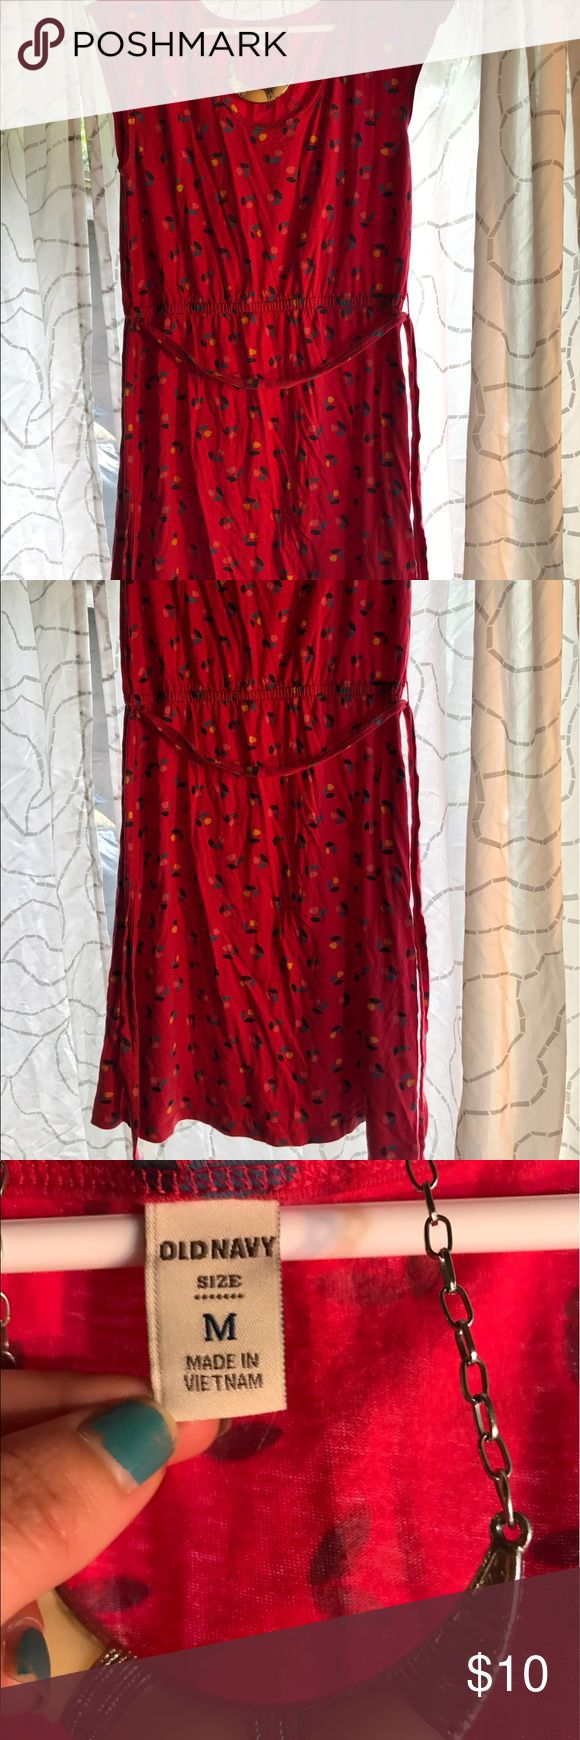 Old Navy cap sleeve dress Delightful cotton dress with a sweet little flower pattern. Old Navy Dresses Midi